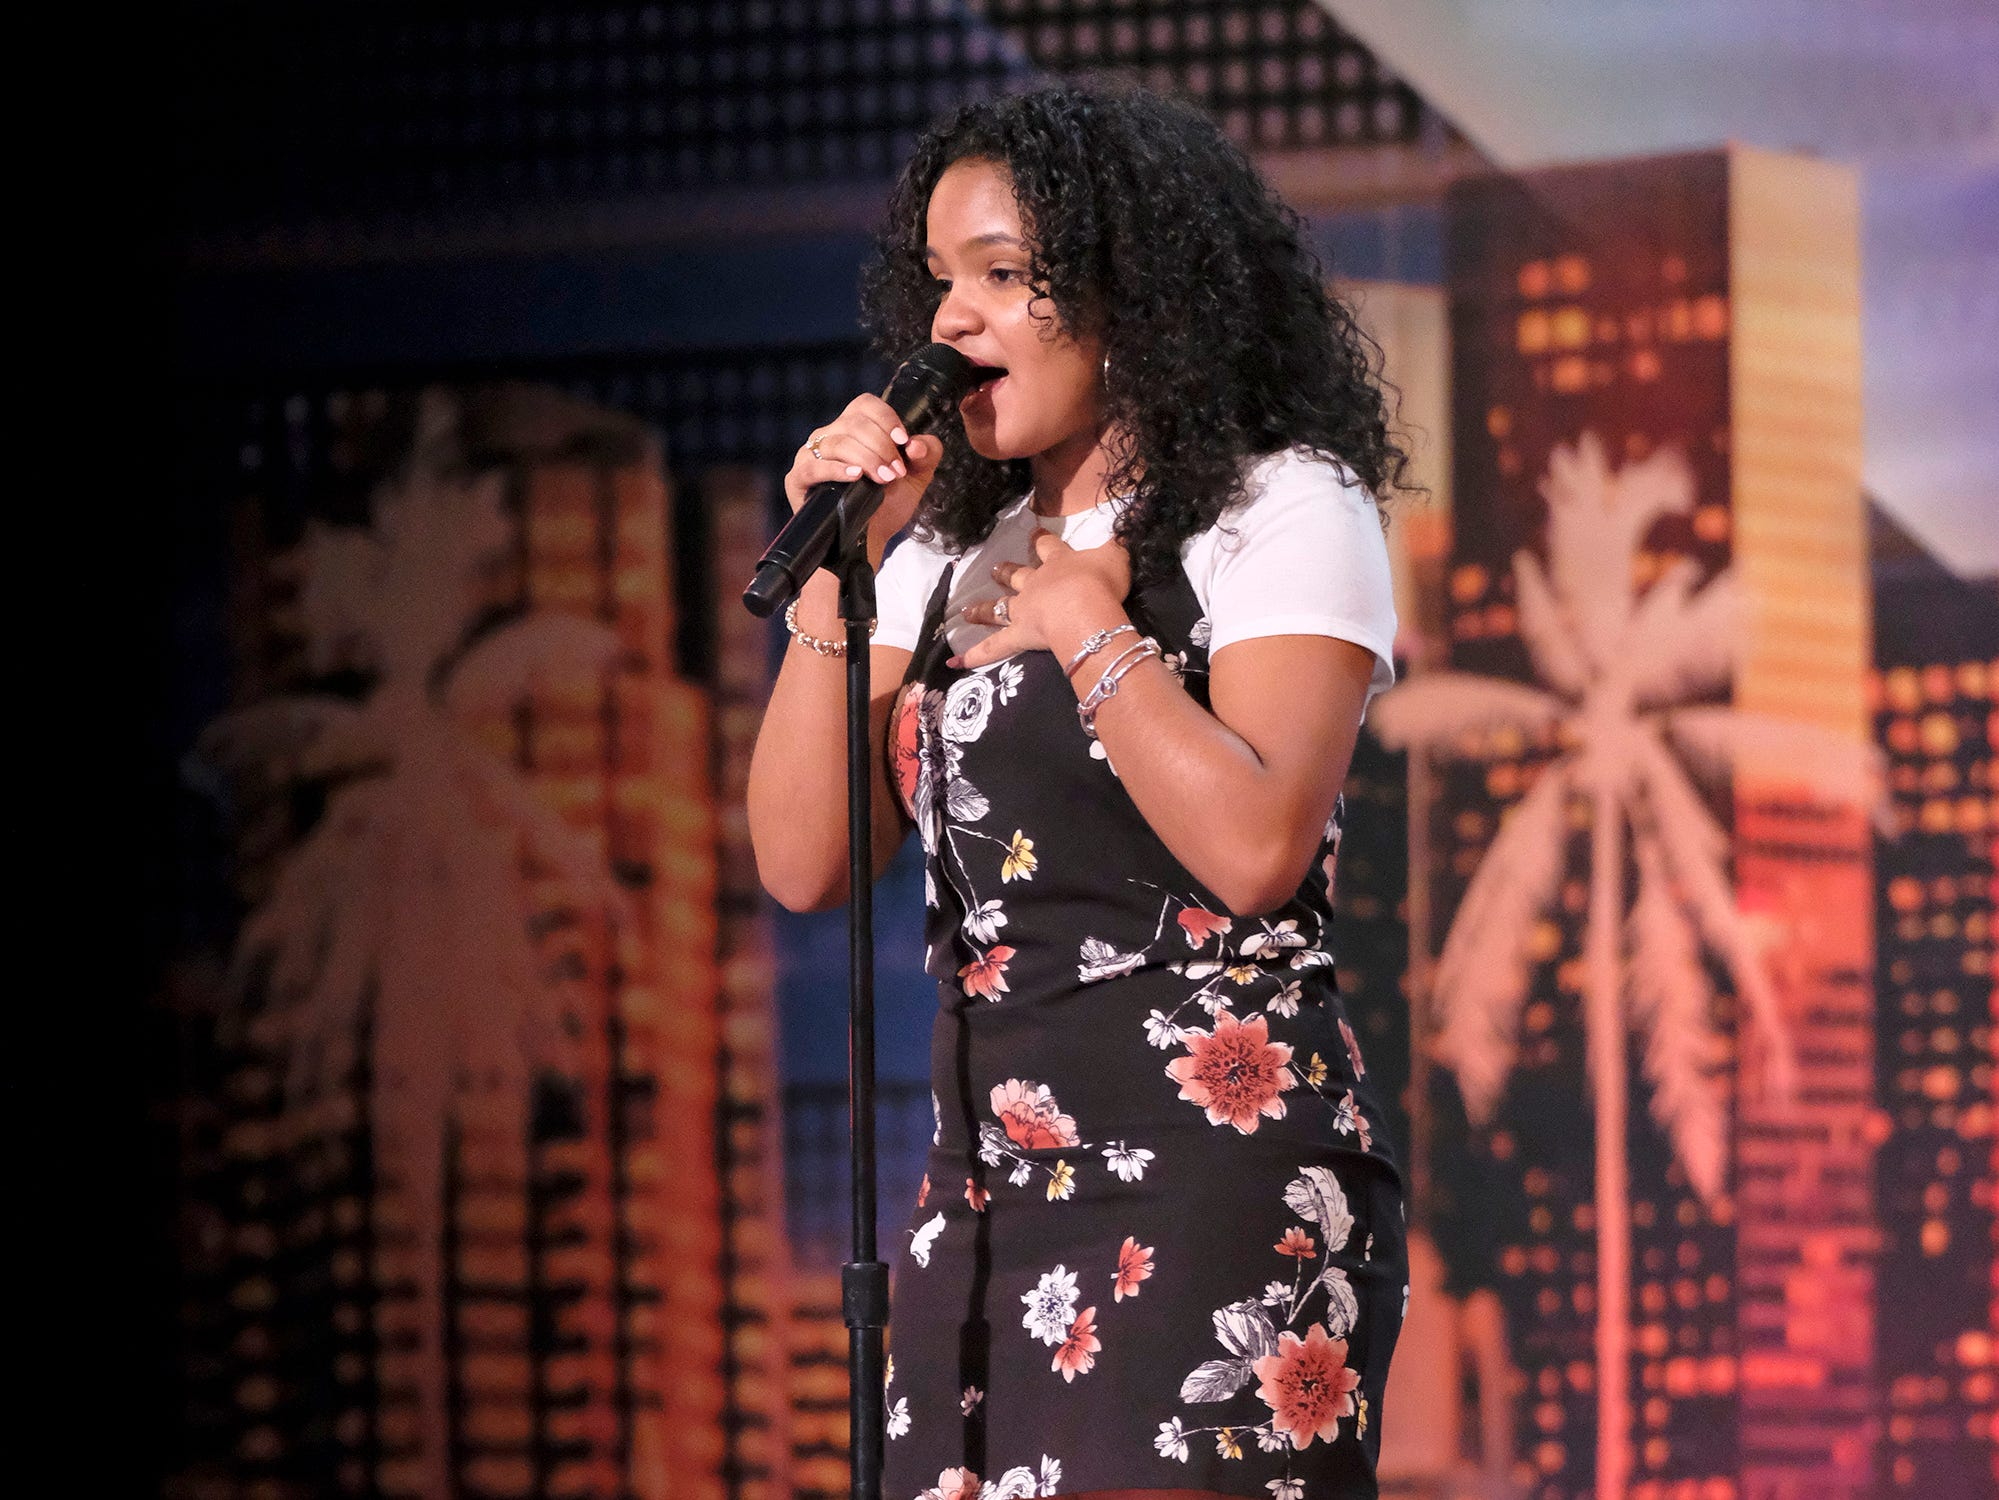 Singer Amanda Mena earned Mel B's Golden Buzzer